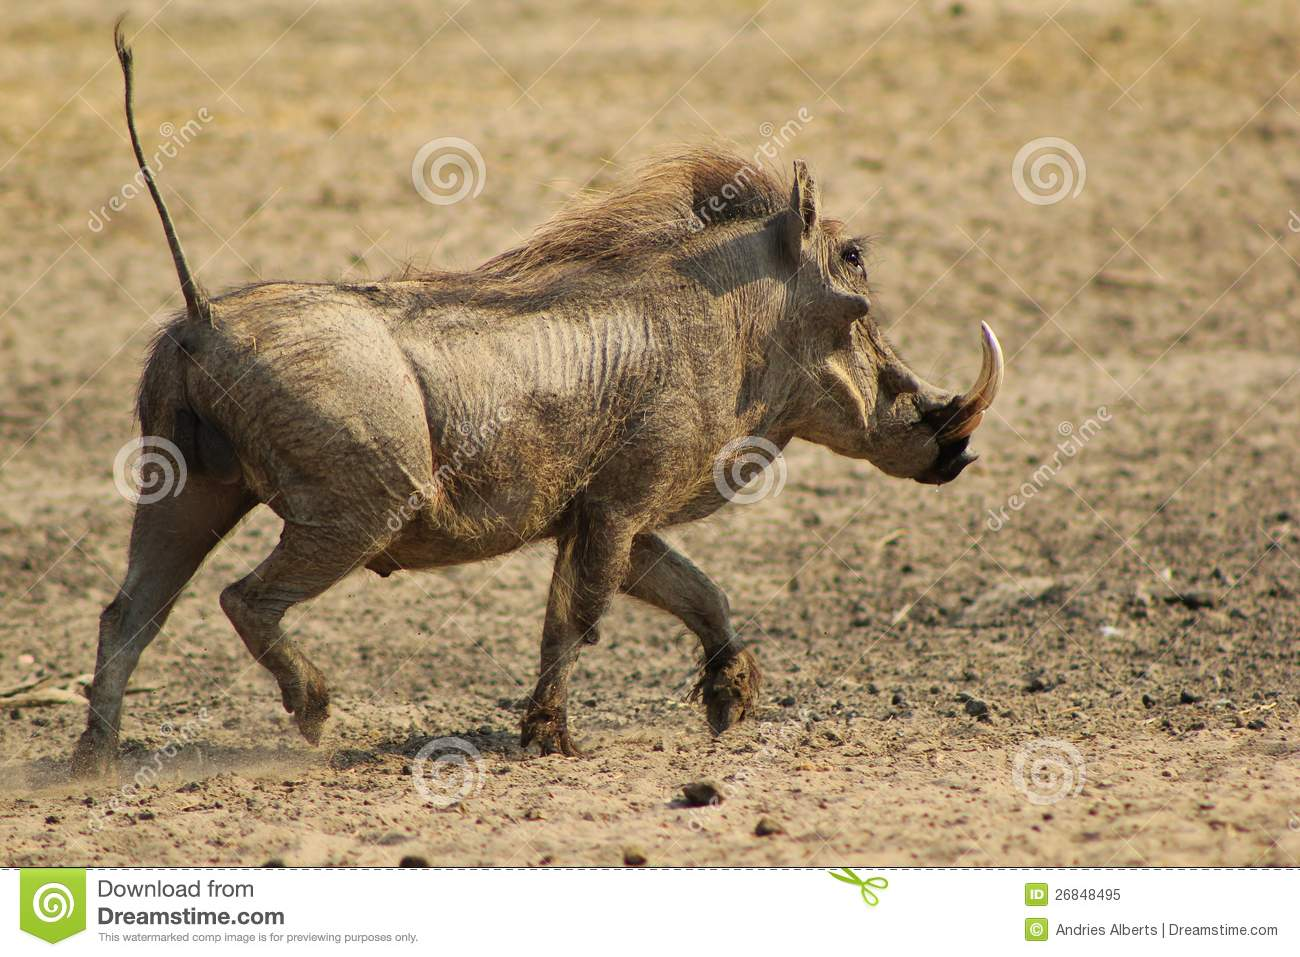 wild hog map with Royalty Free Stock Photo Warthog Running Hog Image26848495 on BrownCreeperWinterMap moreover Royalty Free Stock Photo Warthog Running Hog Image26848495 further Stock Photos Porcupine Image2894713 additionally Hedgehogs moreover File Canis lupus dingo  Fraser Island.